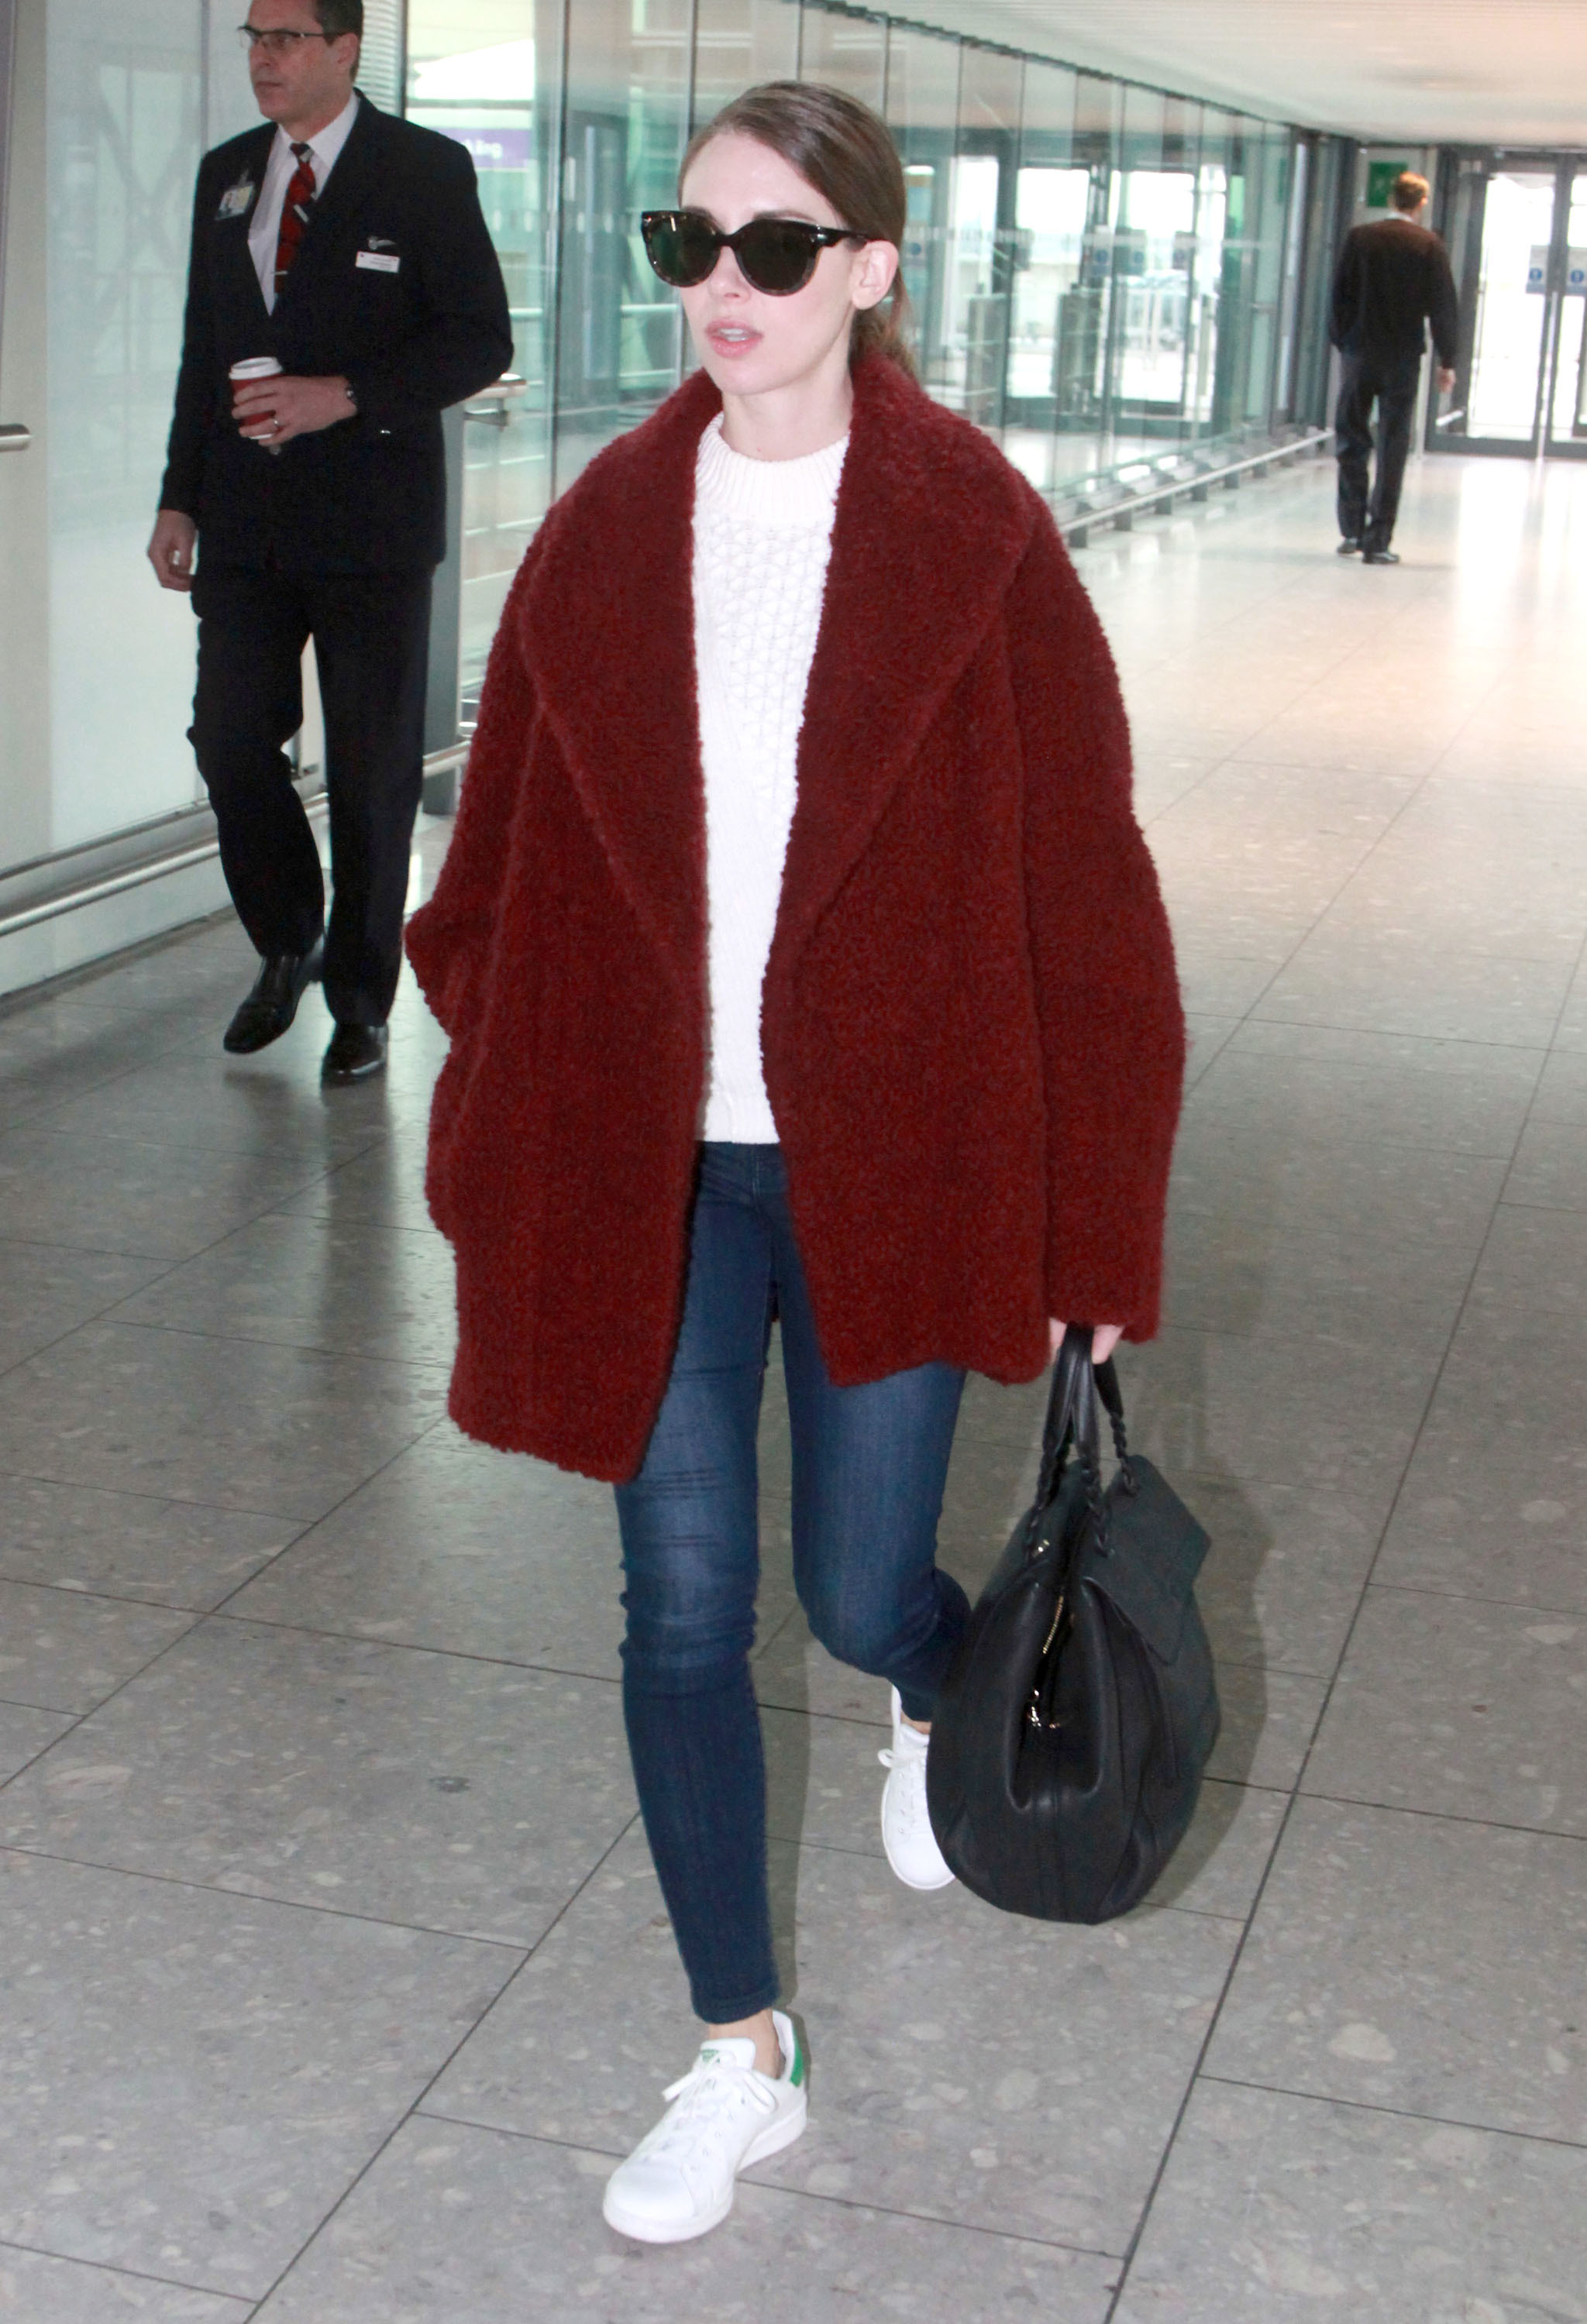 Alison Brie departs on a flight to New York from Heathrow Airport in London on Feb. 10, 2016.